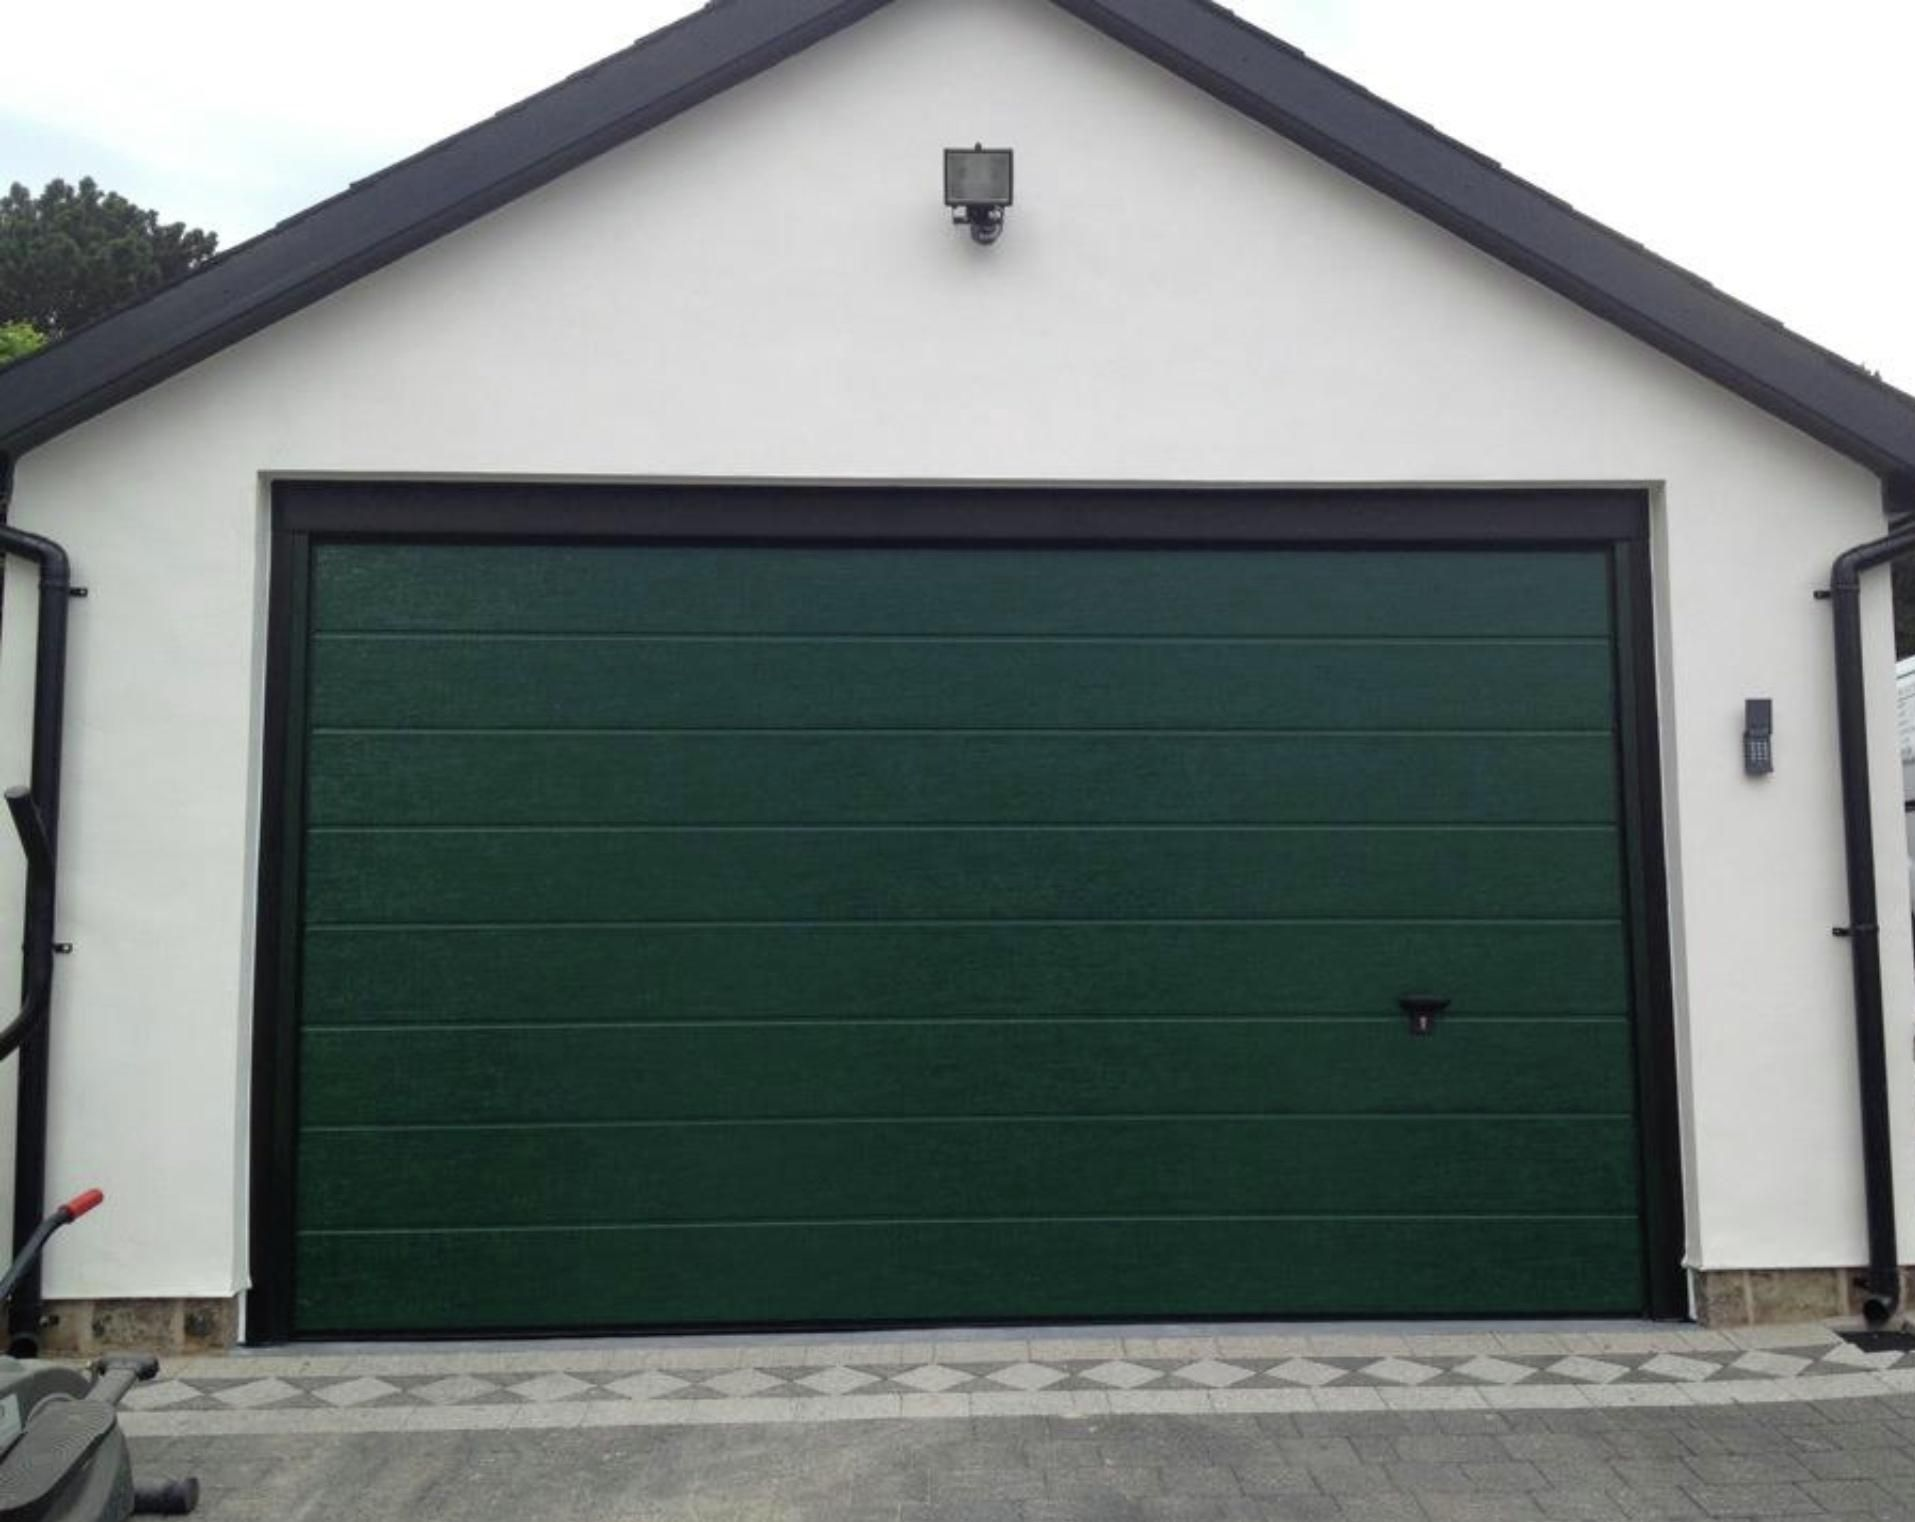 A1 garage doors chesterfield httpvoteno123 pinterest a1 garage doors chesterfield rubansaba